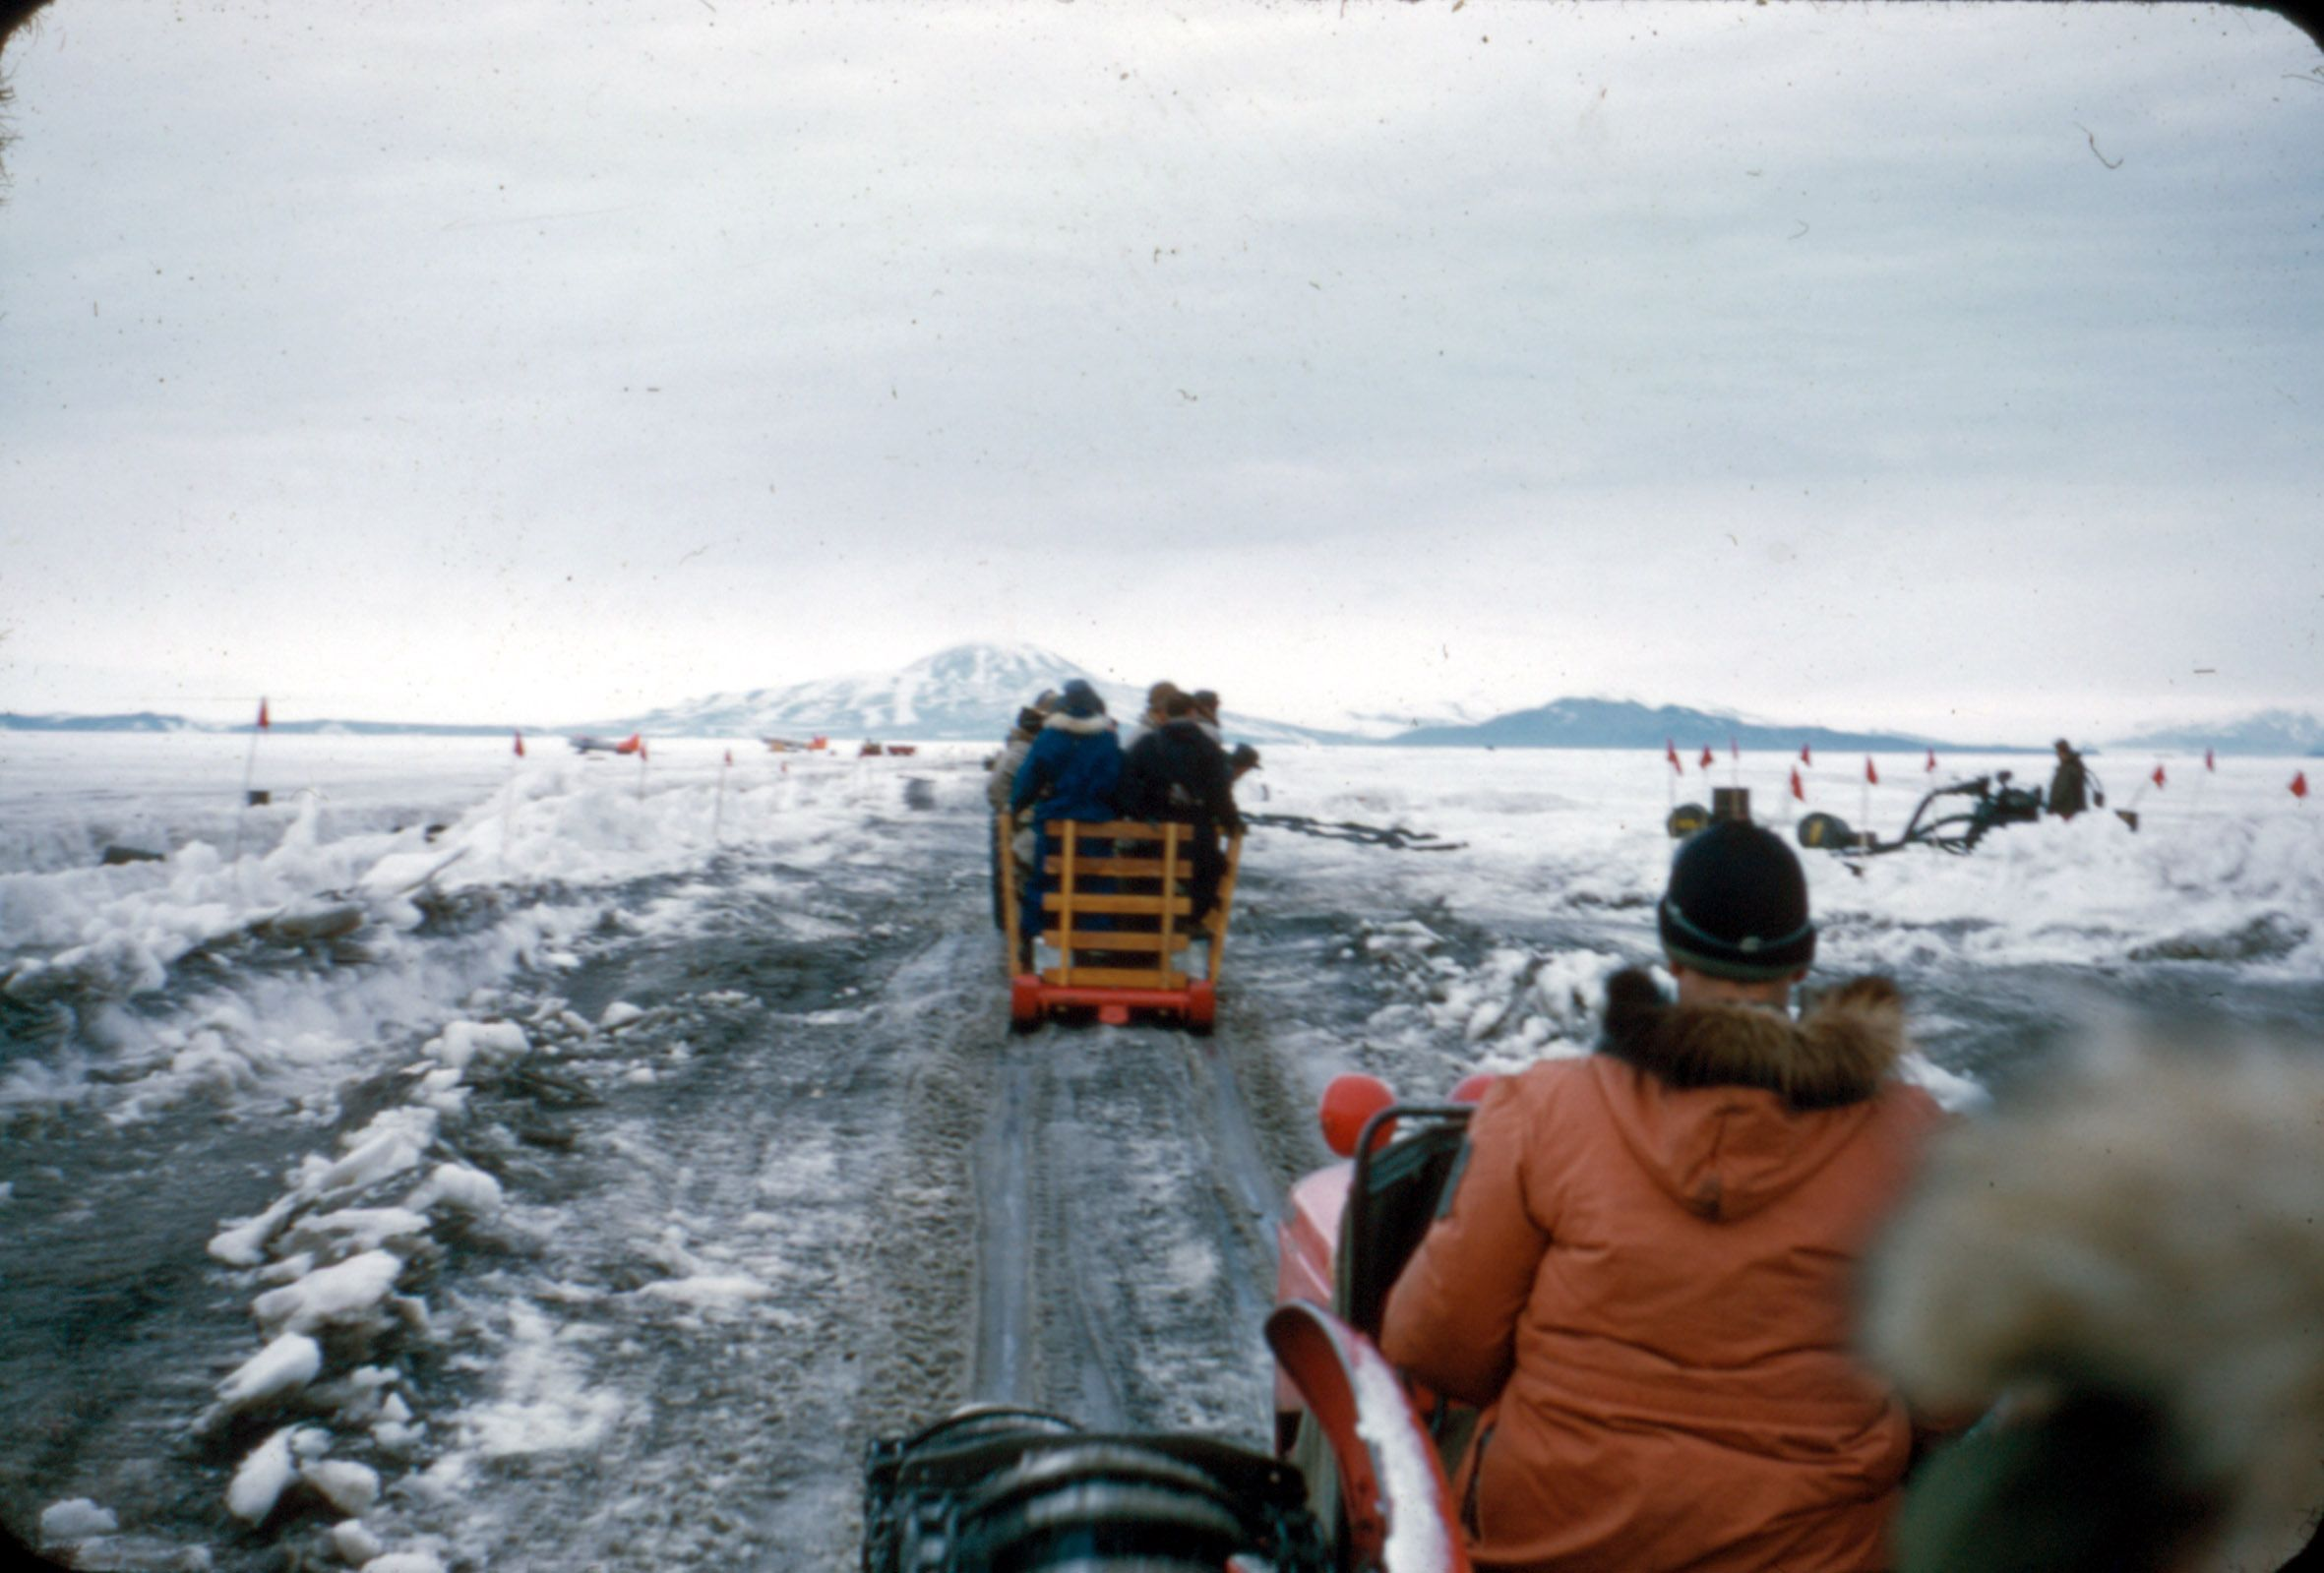 """Sir Edmund Hillary driving a tractor."" Taken by Alun"